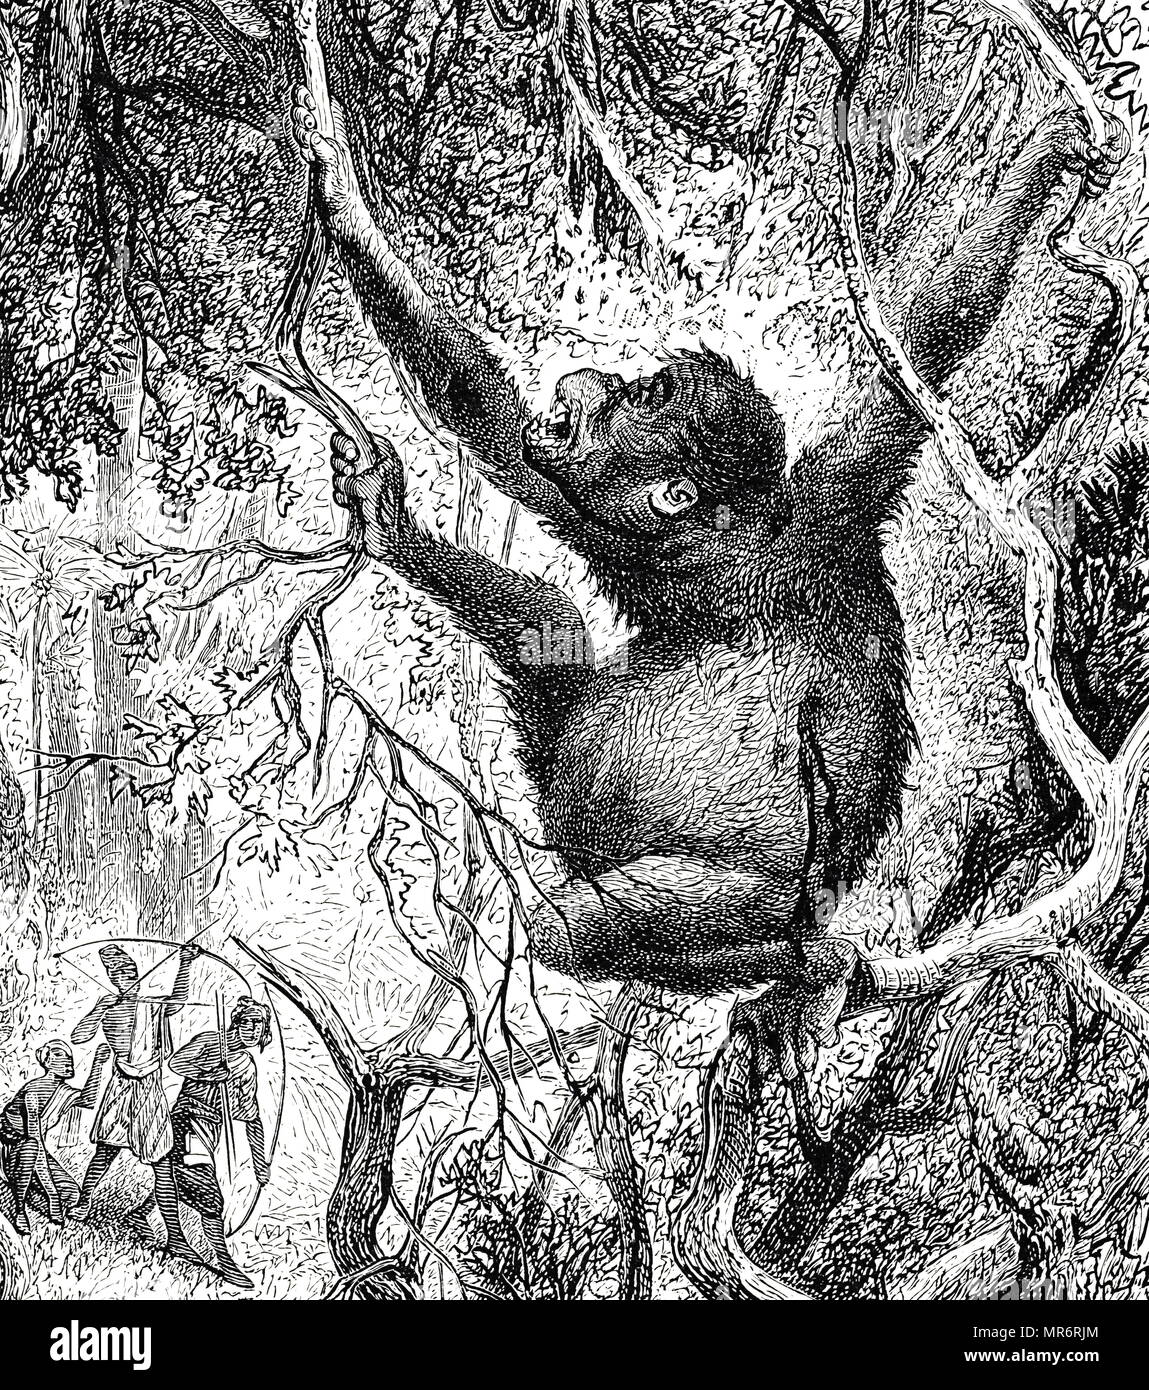 Engraving depicting an Orangutan killed by hunters in Sumatra. Dated 19th century - Stock Image